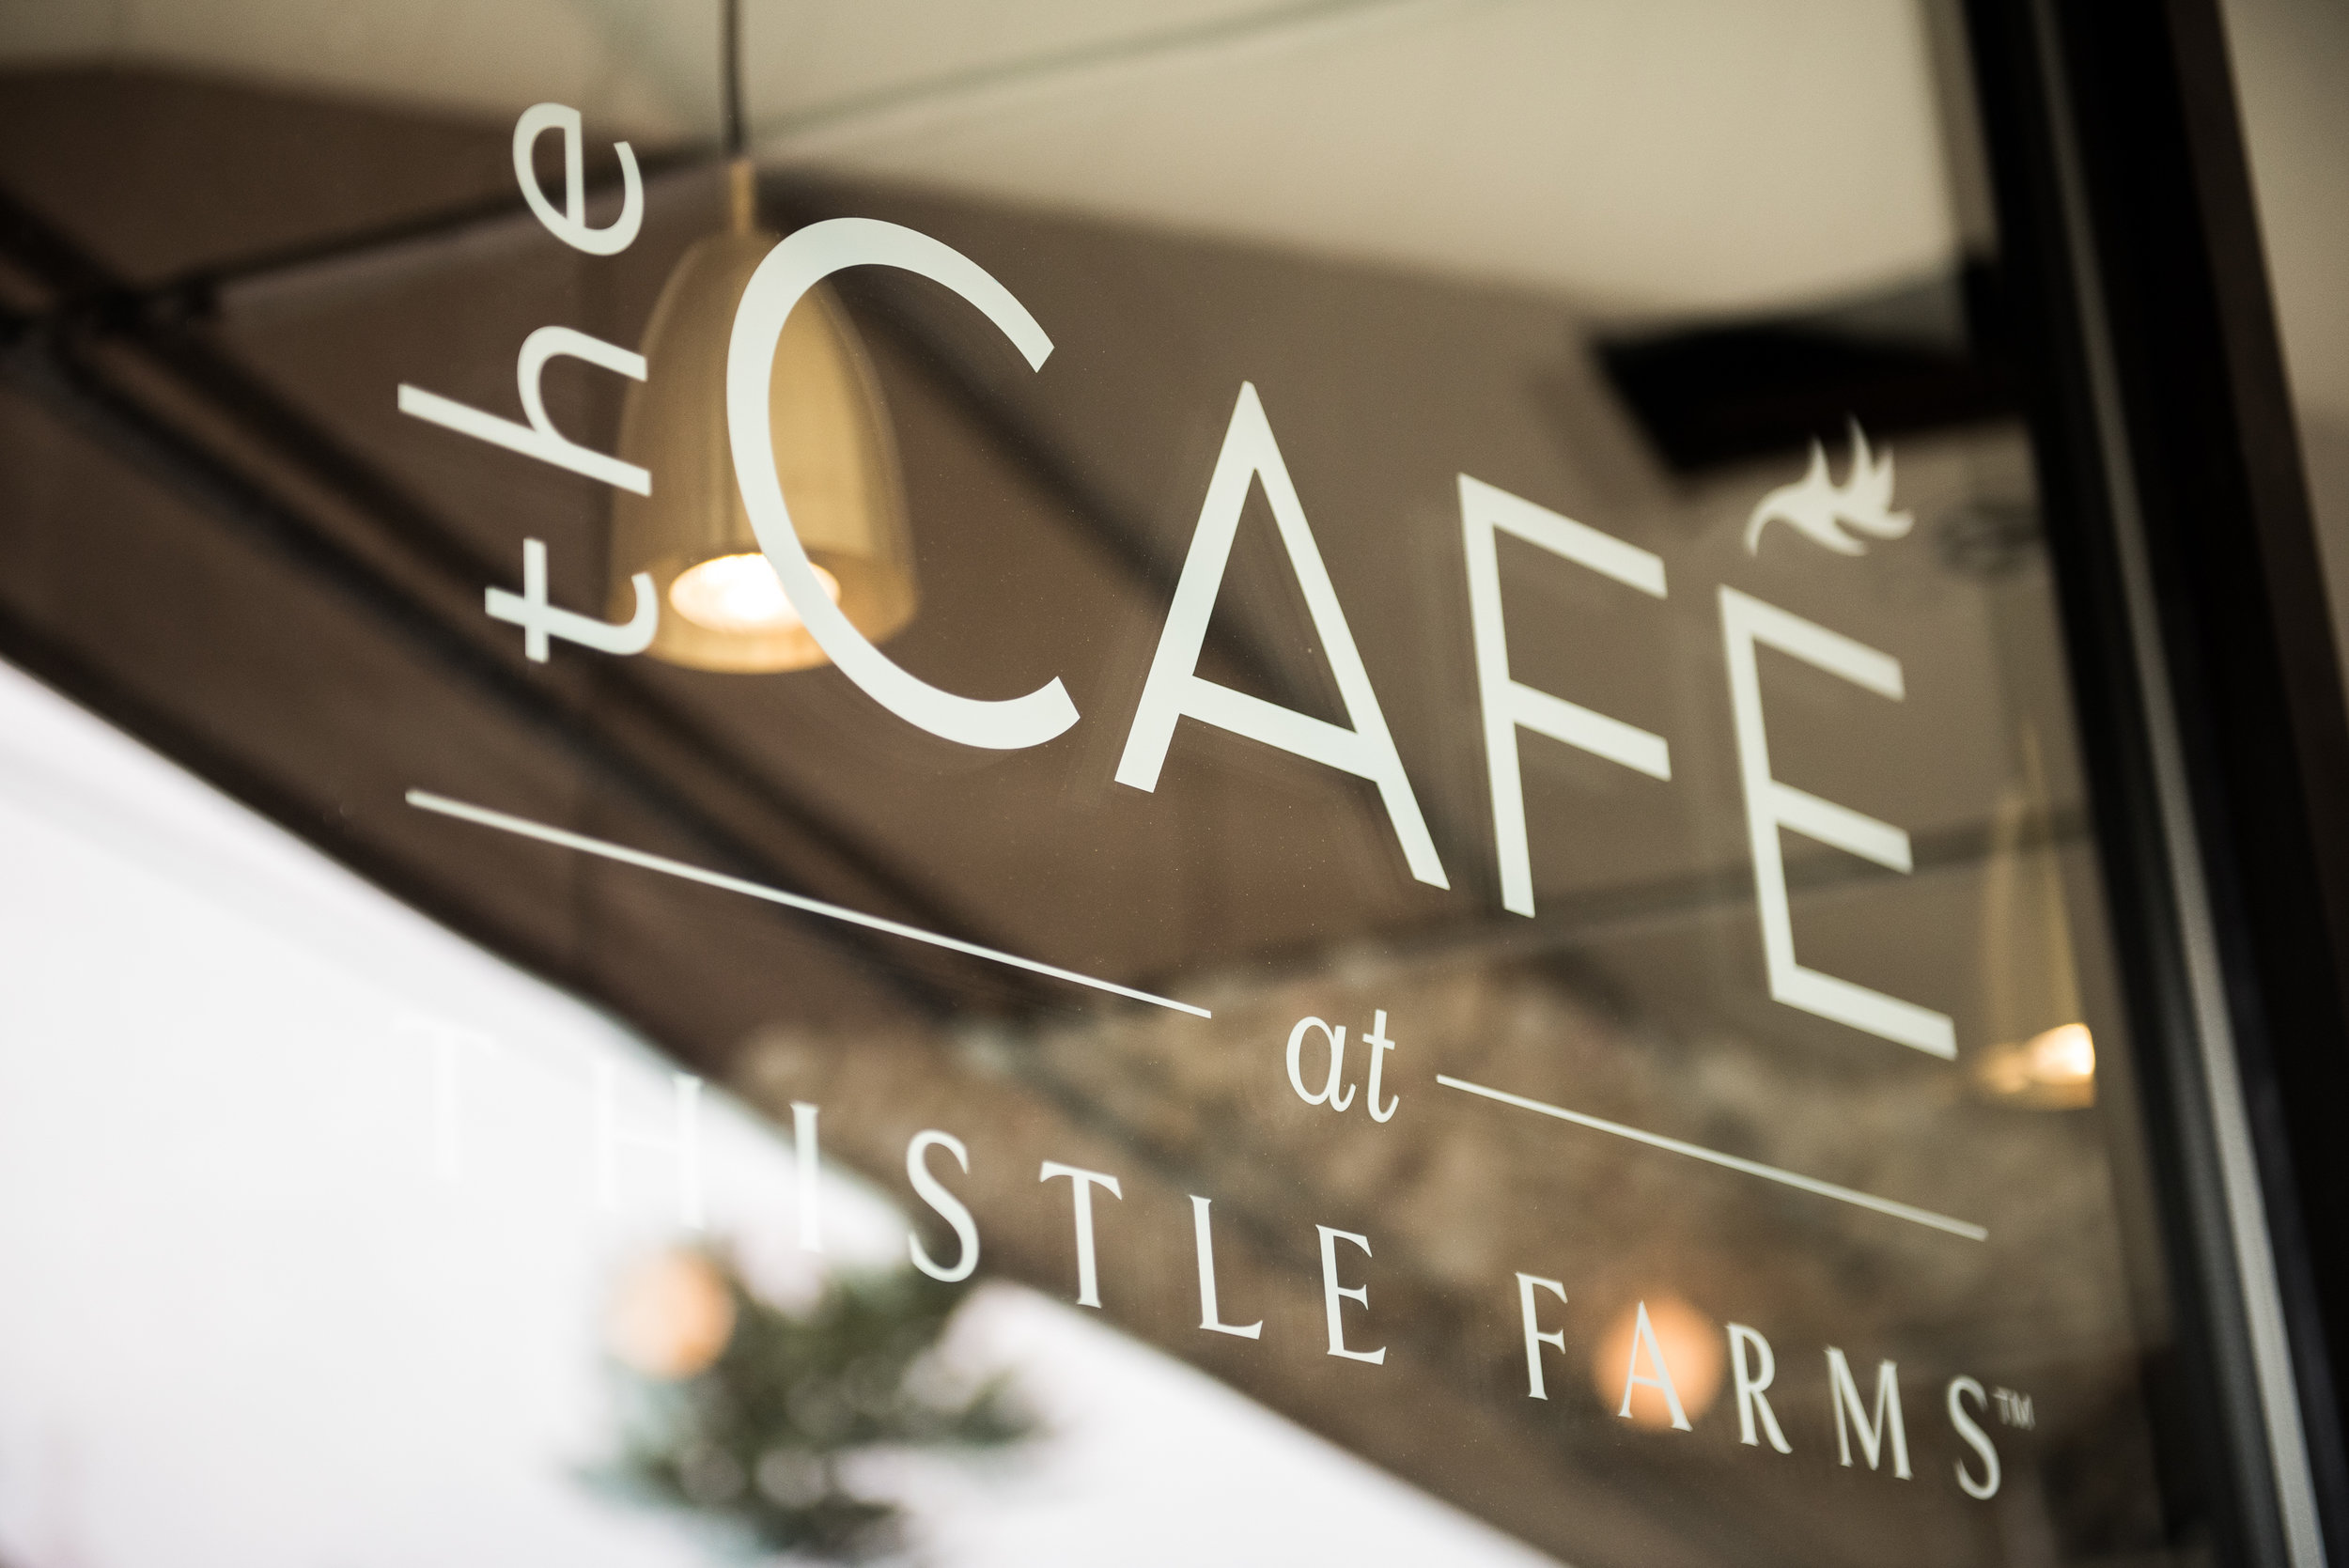 Nashville Scene    First Bite: The Cafe At Thistle Farms   The cafe at 5122 Charlotte Pike has been under renovation — updating the floorplan, adding another dining space both inside and out back —for a while but has now reopened as  The Café at Thistle Farms .